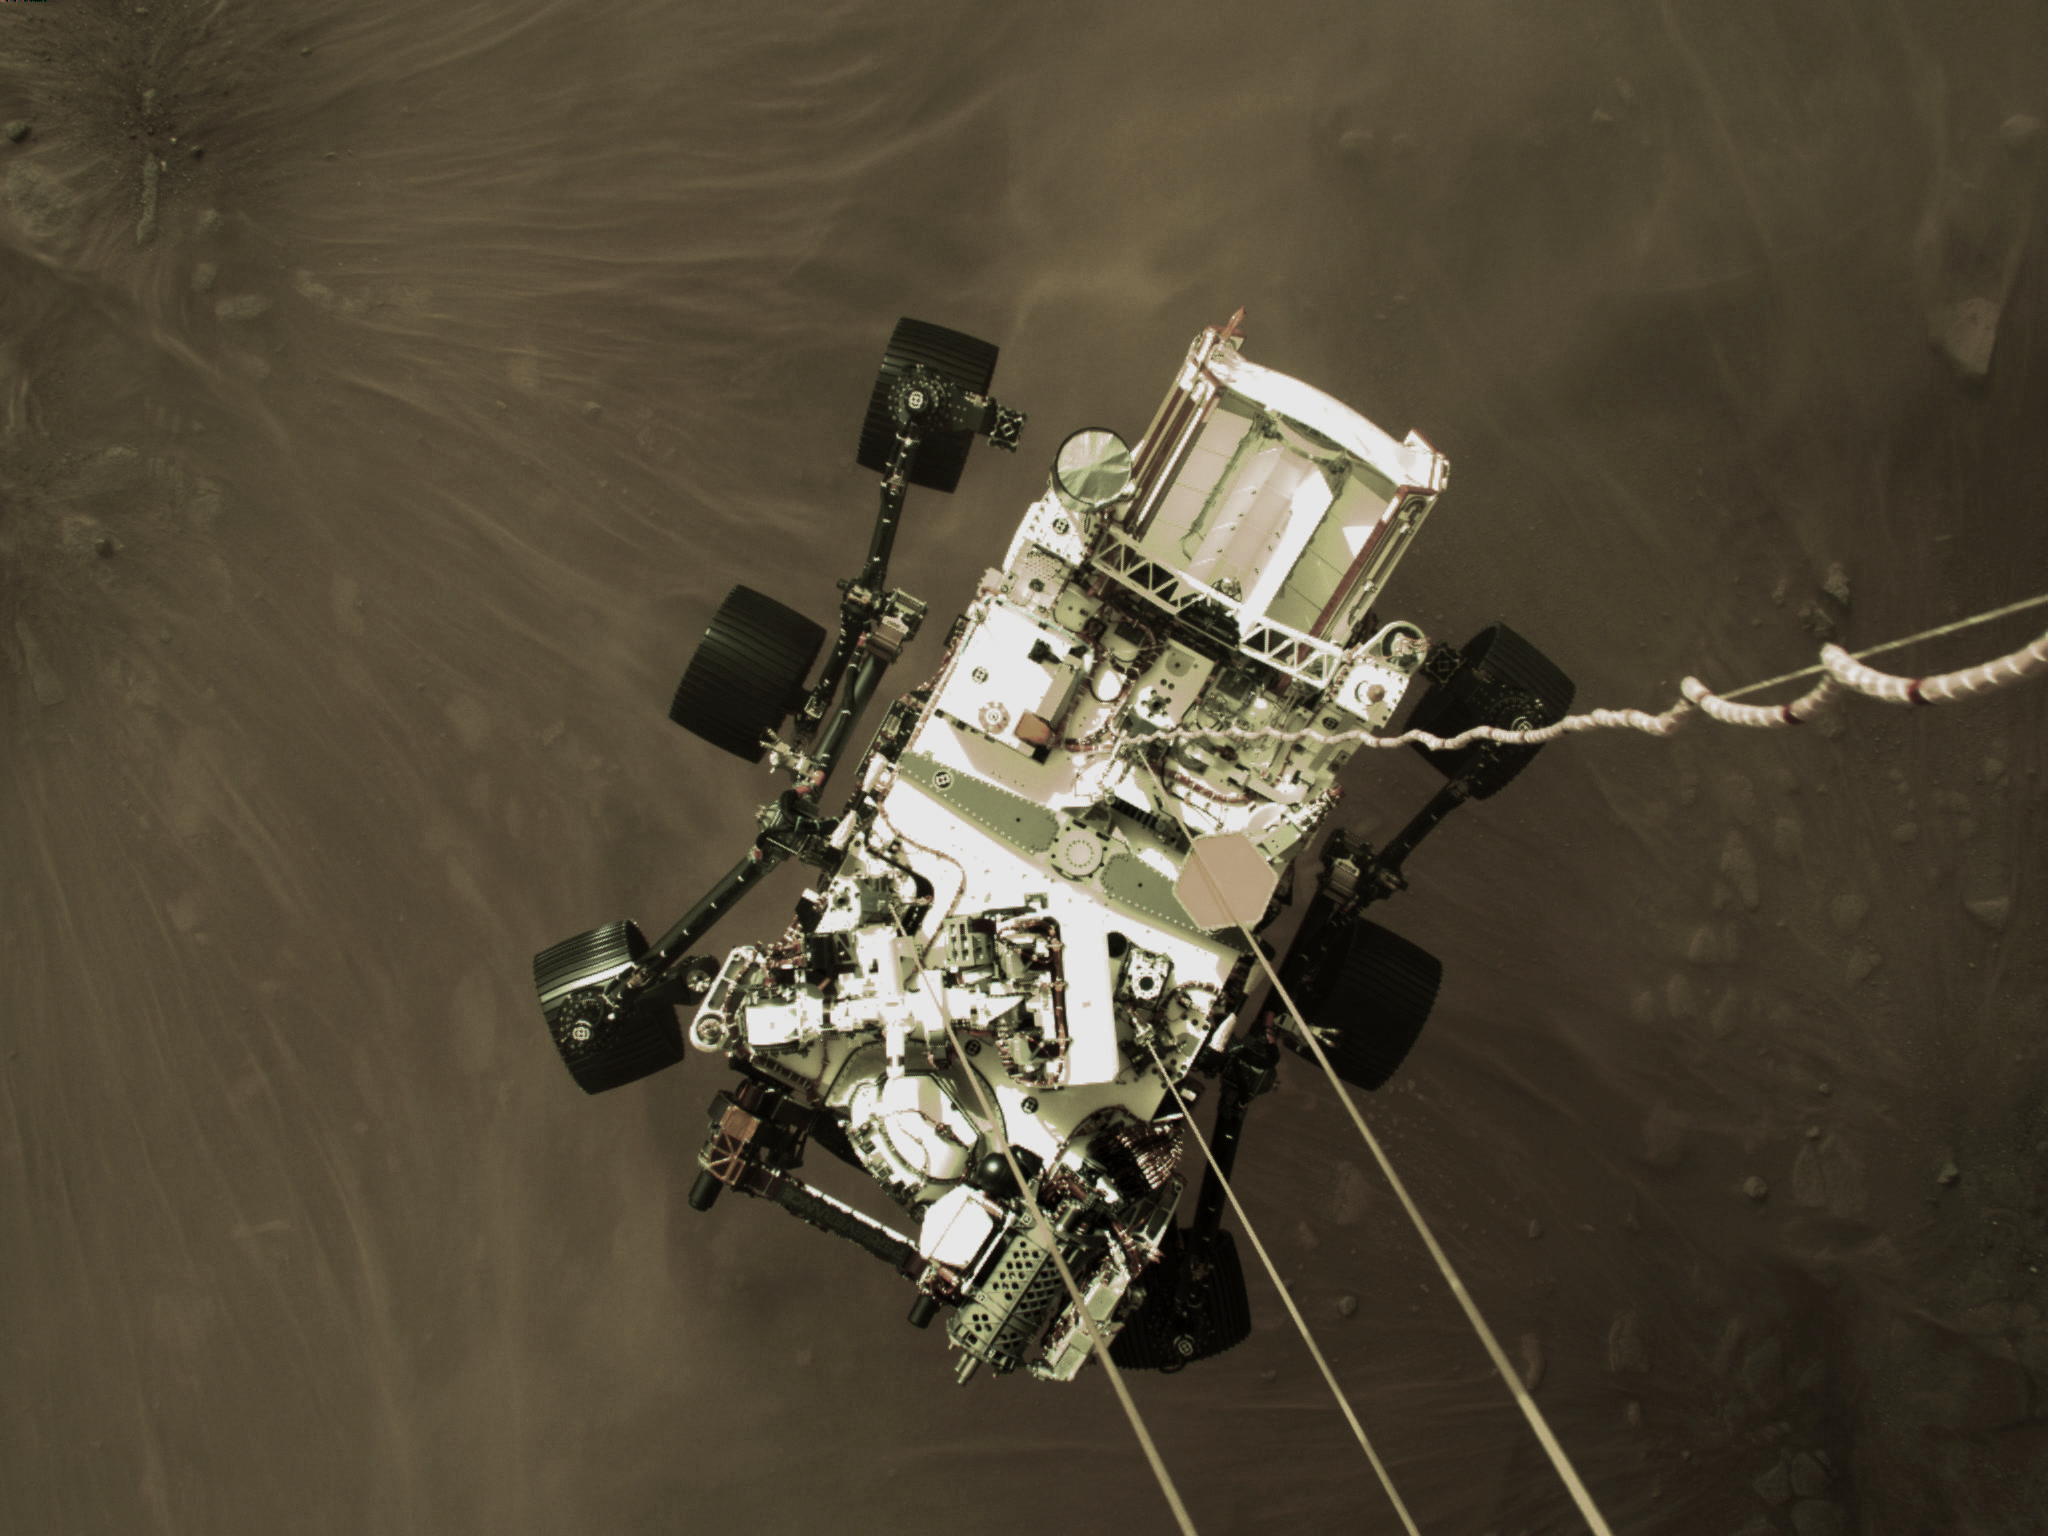 This high-resolution still image is part of a video taken by several cameras as NASA's Perseverance rover touched down on Mars on Feb. 18, 2021. A camera aboard the descent stage captured this shot.